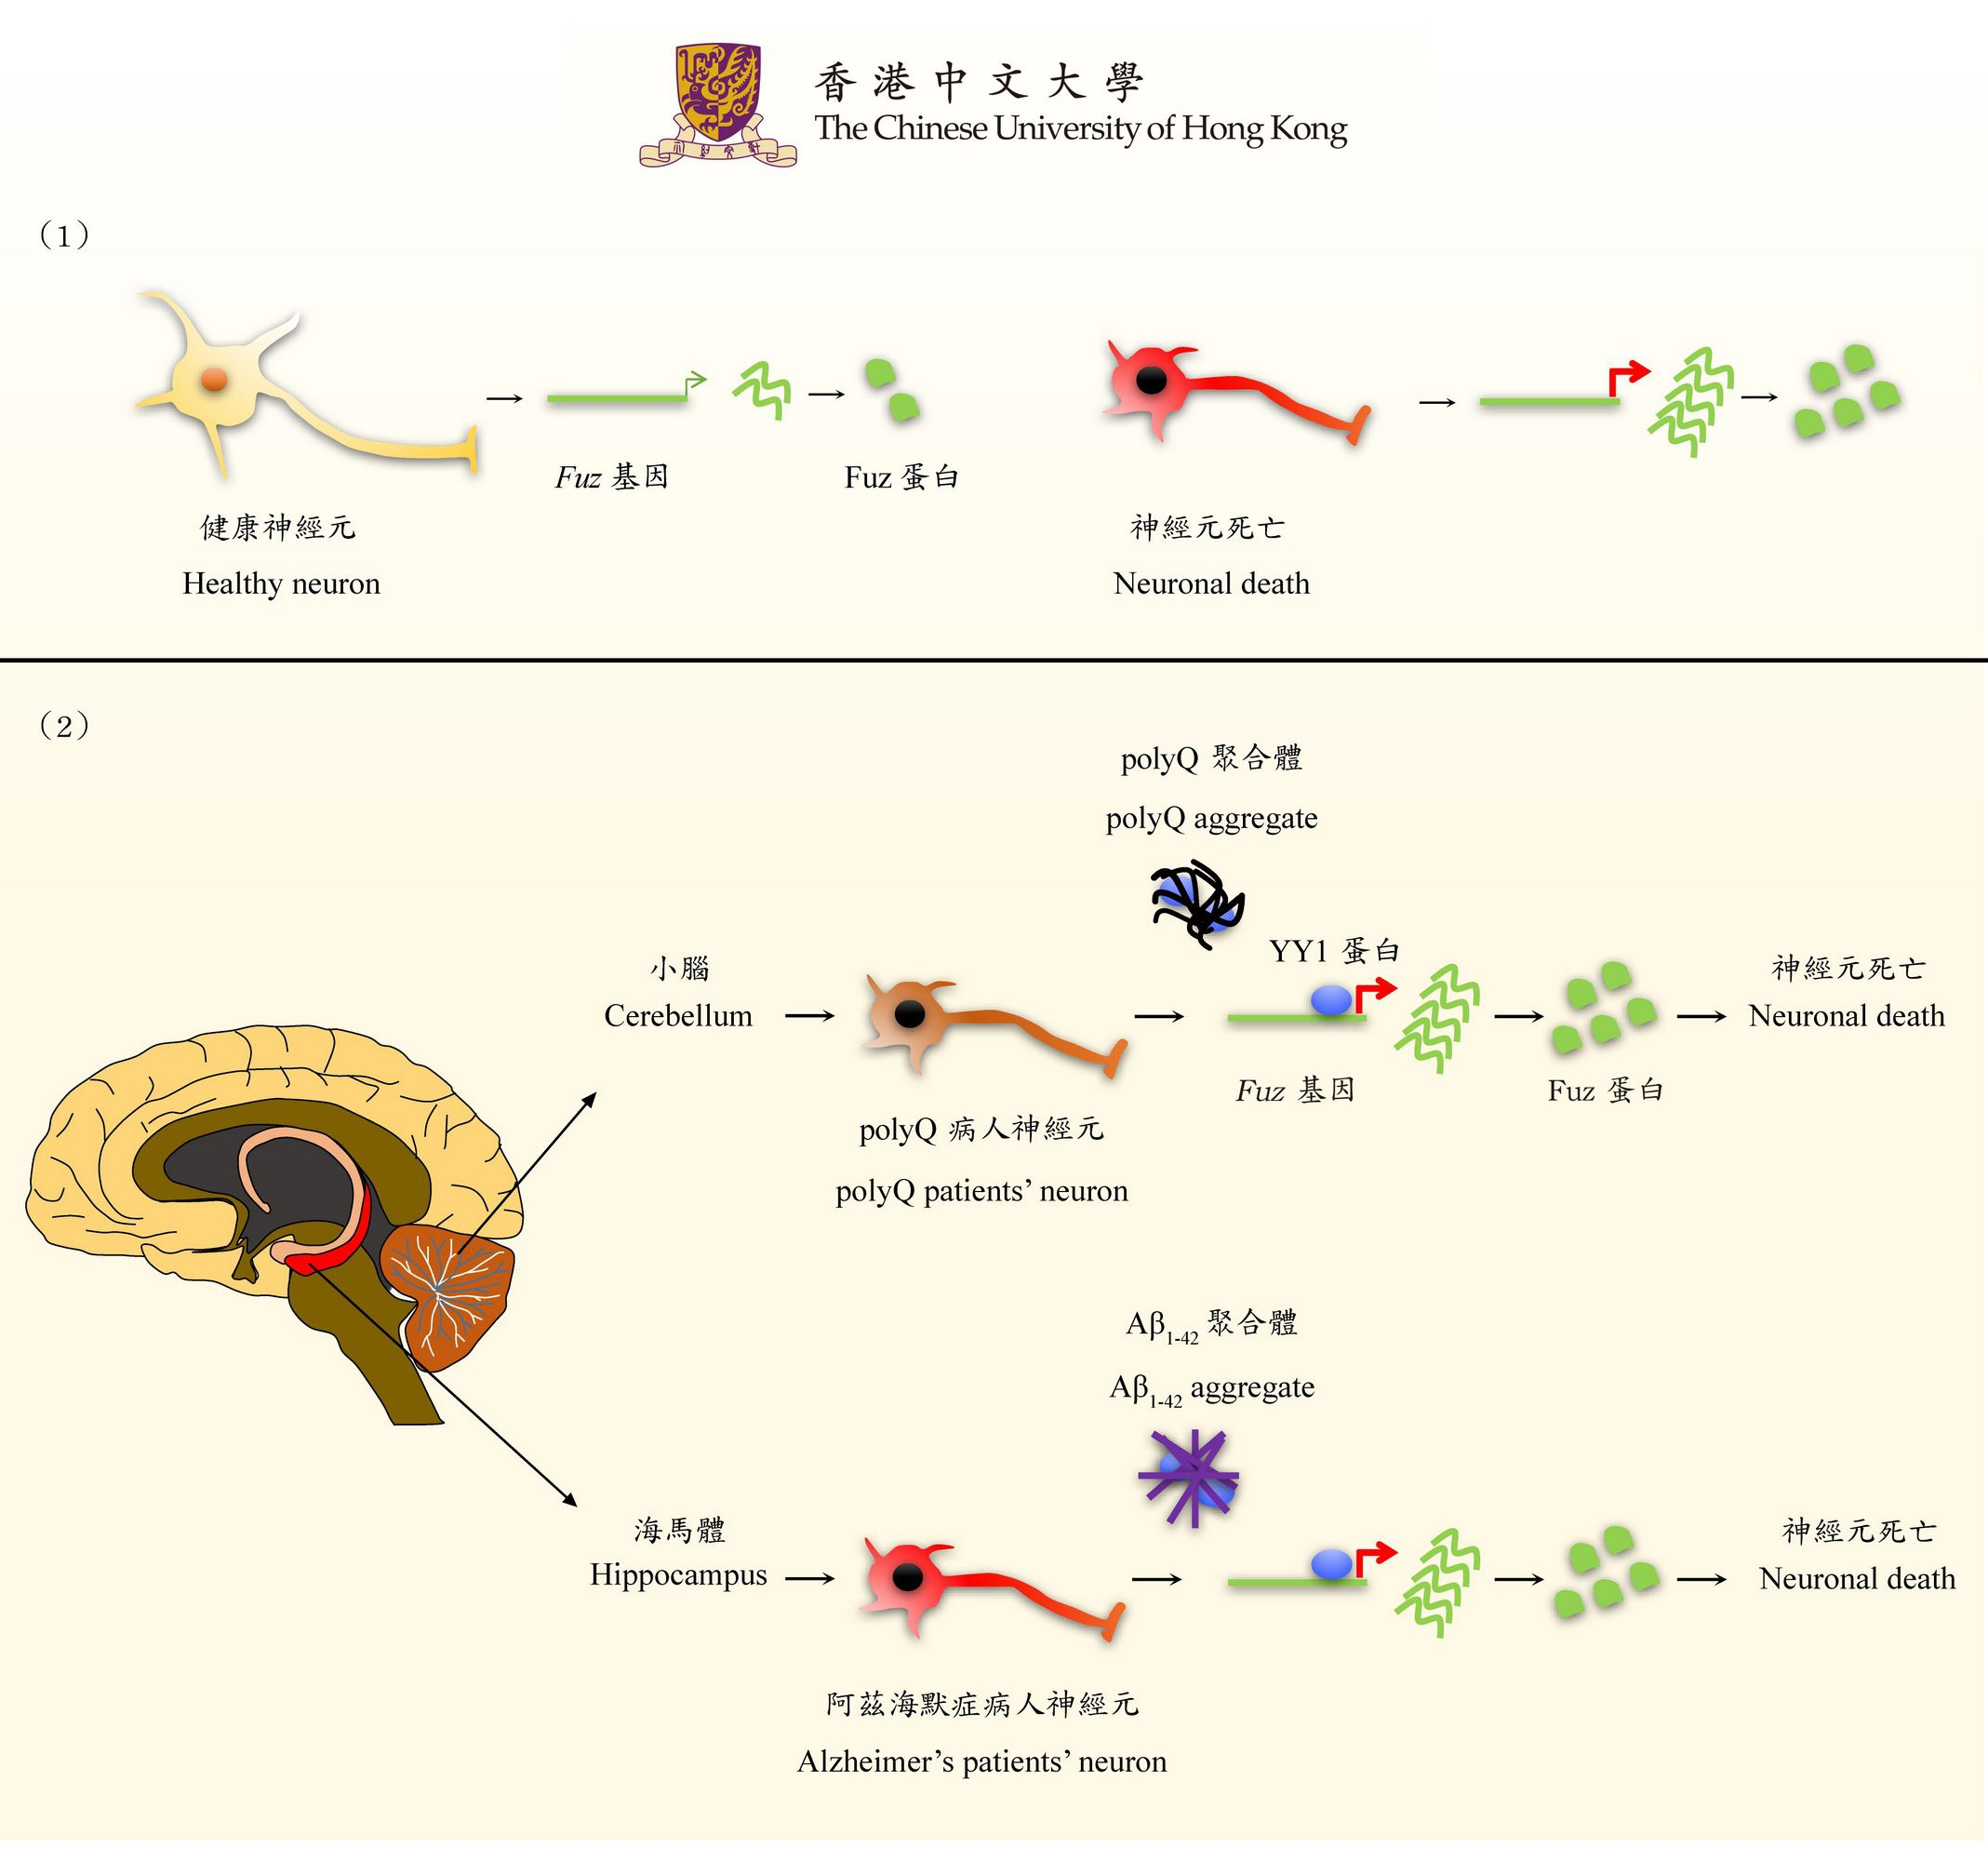 This finding demonstrates the function of Fuz in inducing neuronal death. The study of this function in polyQ disorders will advance the mechanistic research in common neurological diseases.